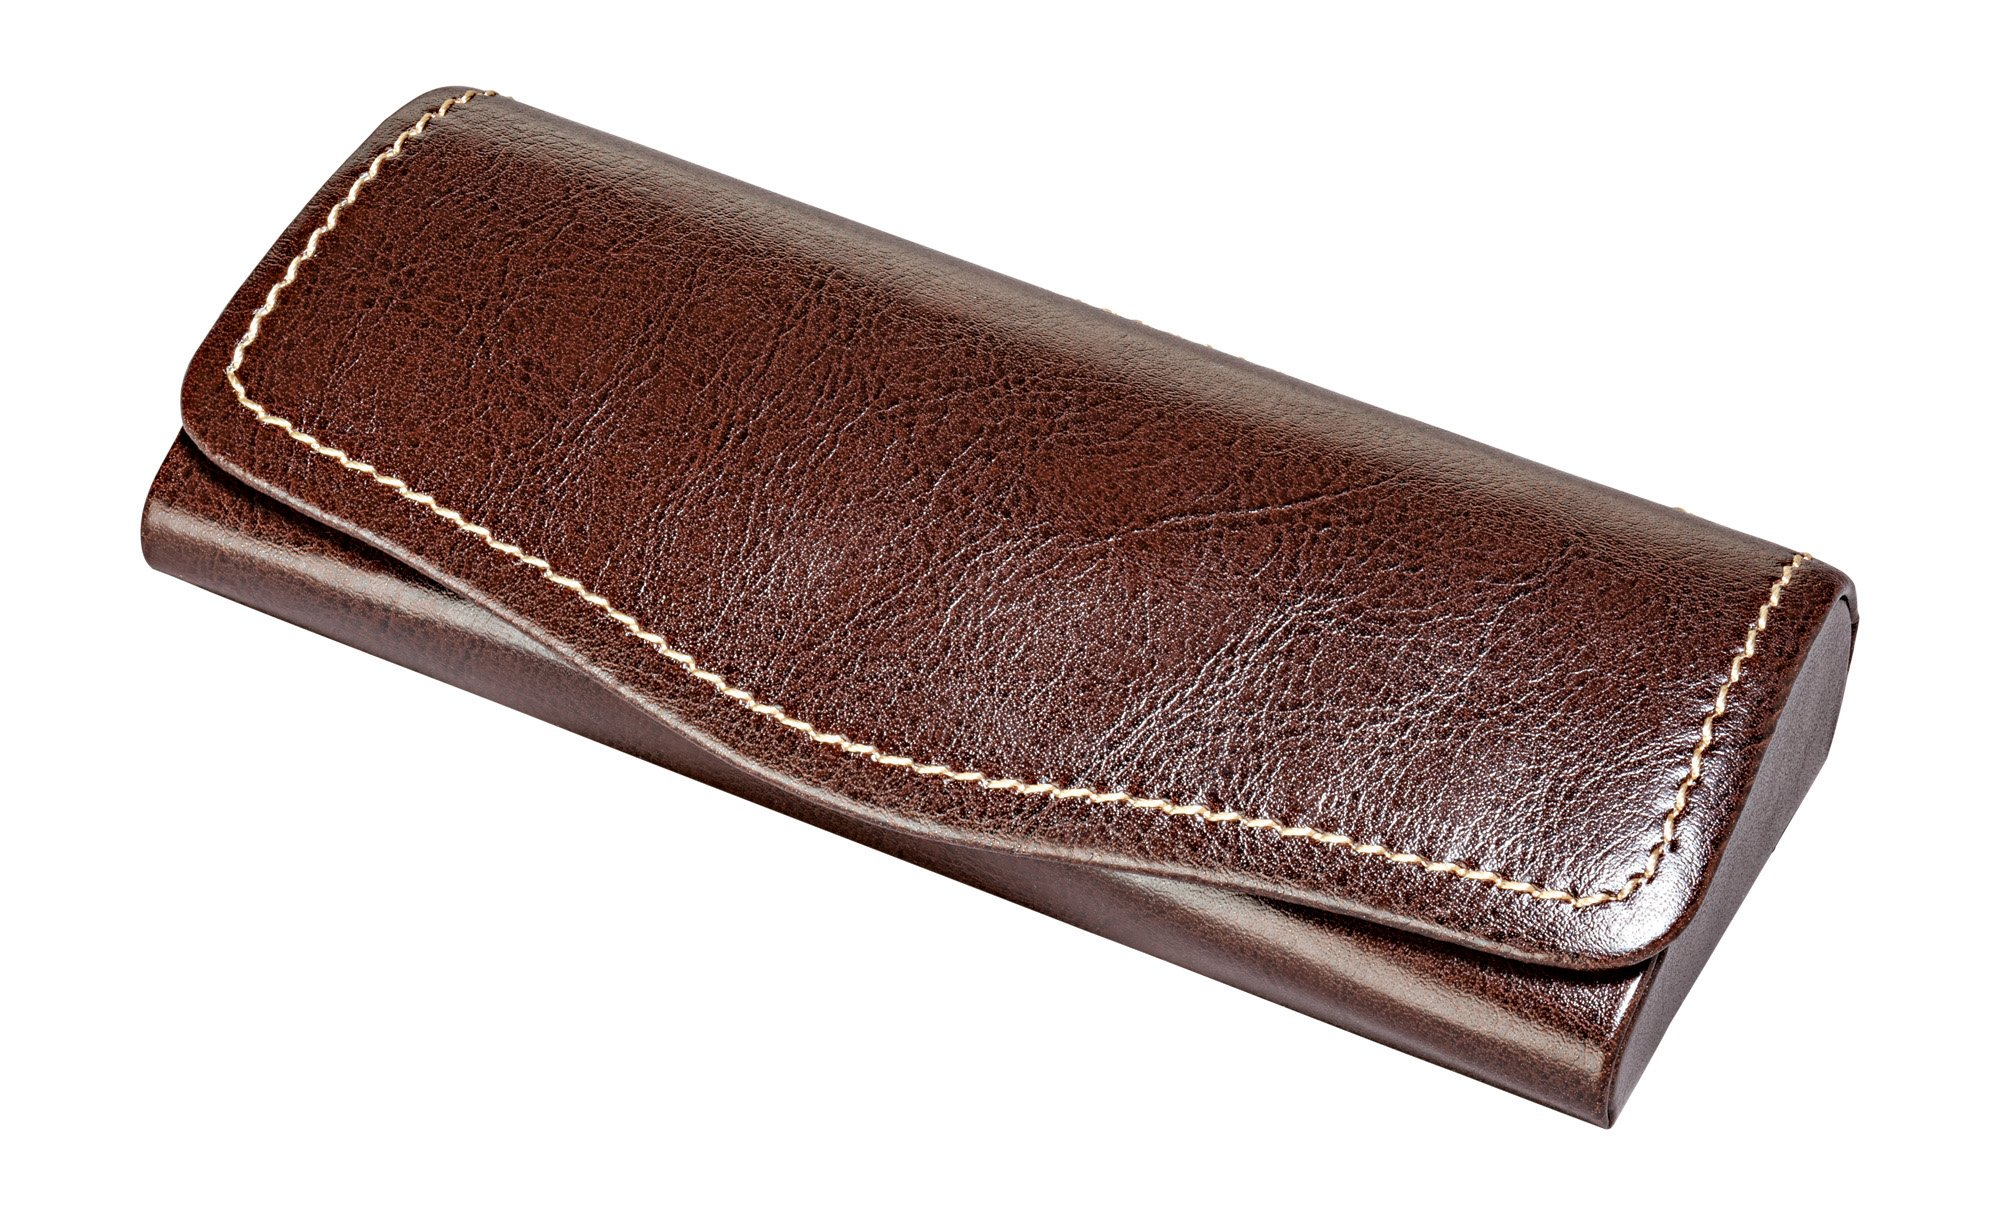 Glasses Case For Men & Women, Hard Eyeglass Case W/Magnetic Closure In Faux Leather, Brown